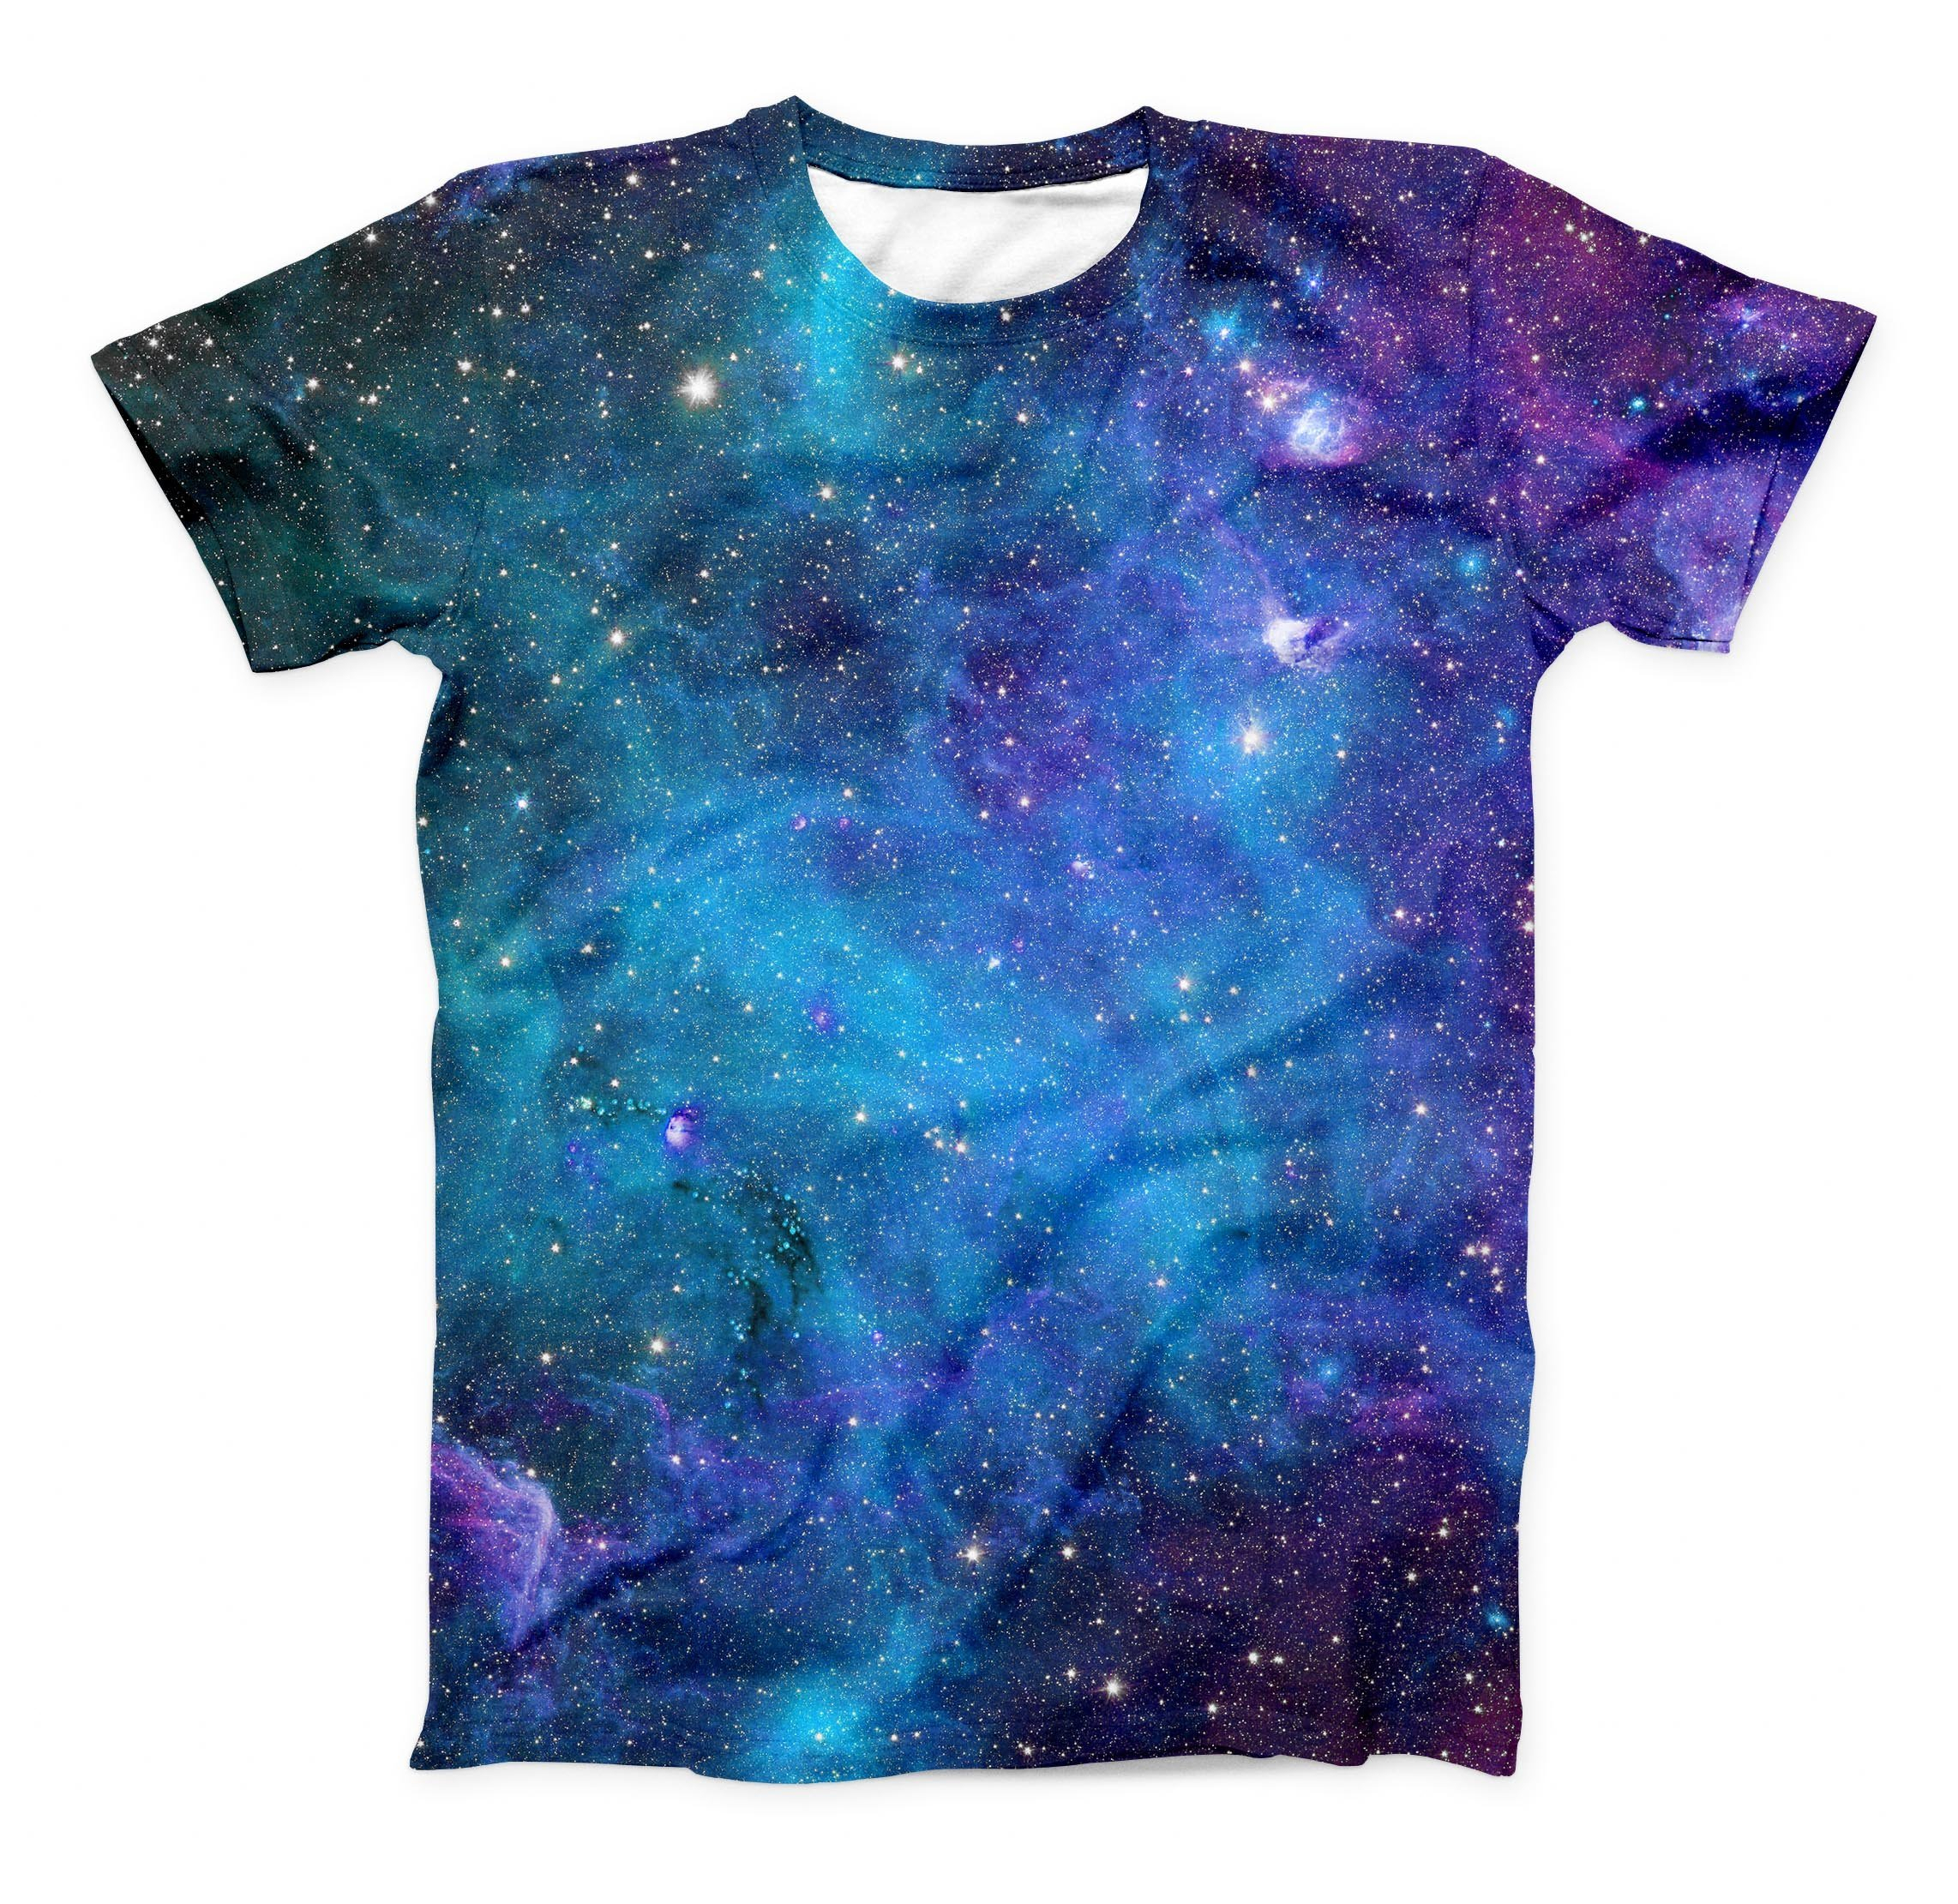 Image of The Azure Nebula ink-Fuzed Unisex All Over Full-Printed Fitted Tee Shirt